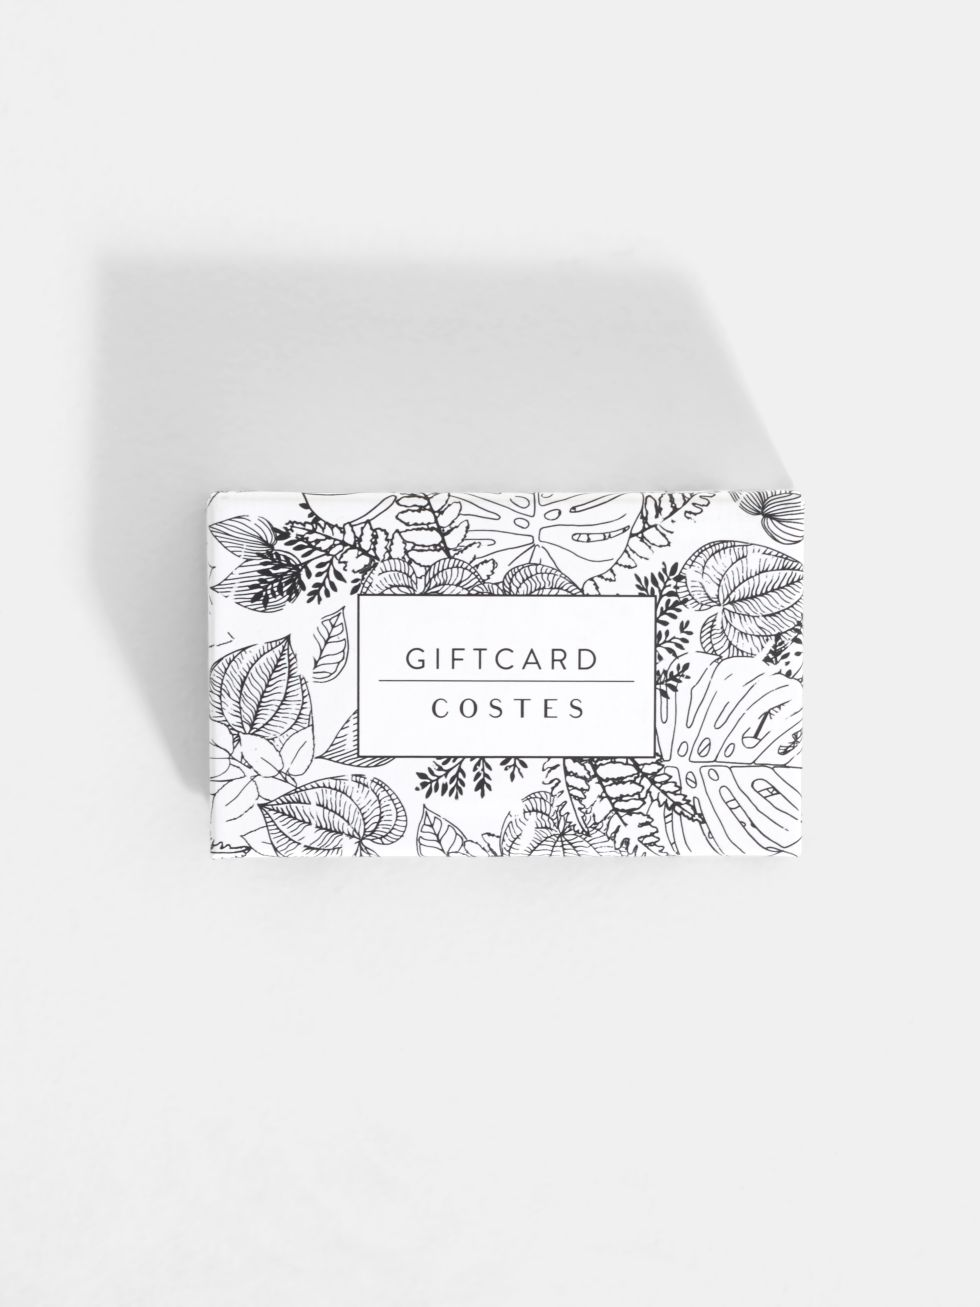 giftcard01